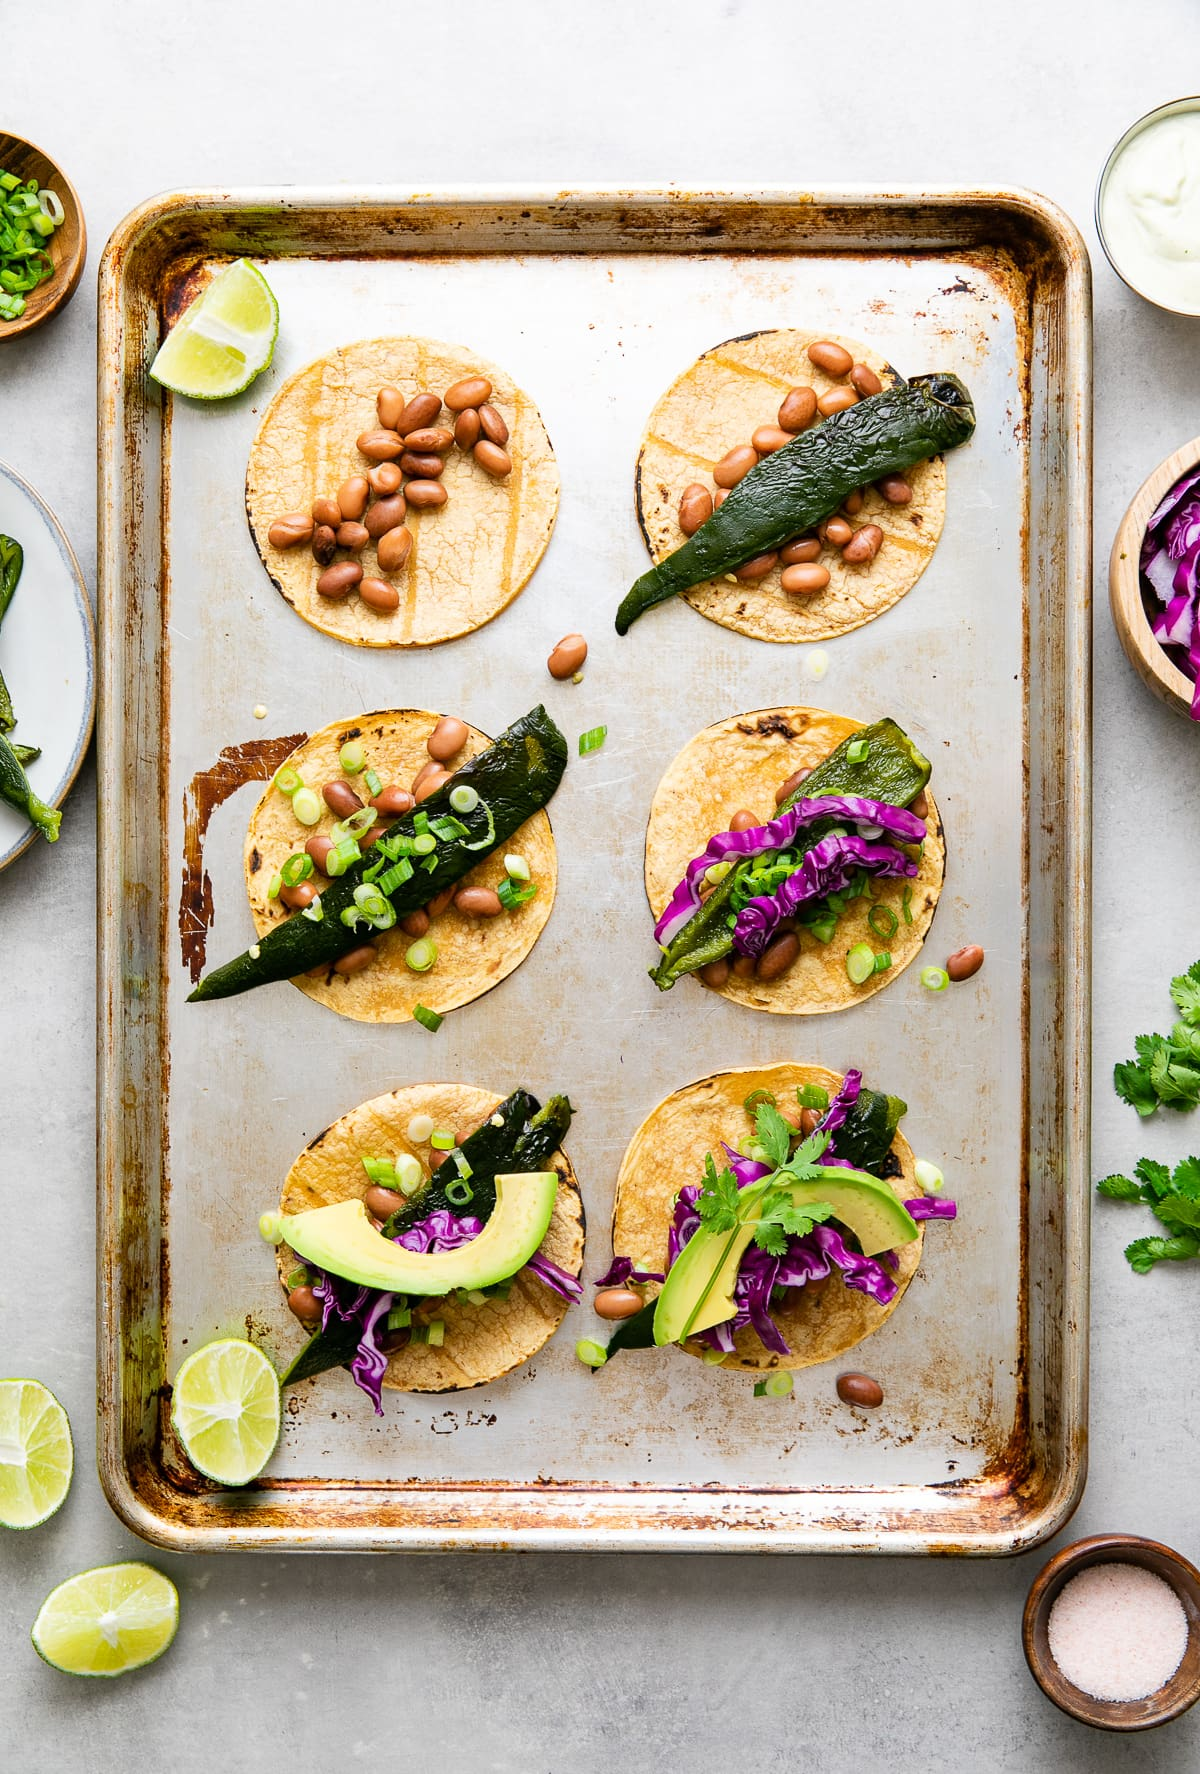 top down view showing the evolution of building poblano tacos on a cookie sheet with items surrounding.